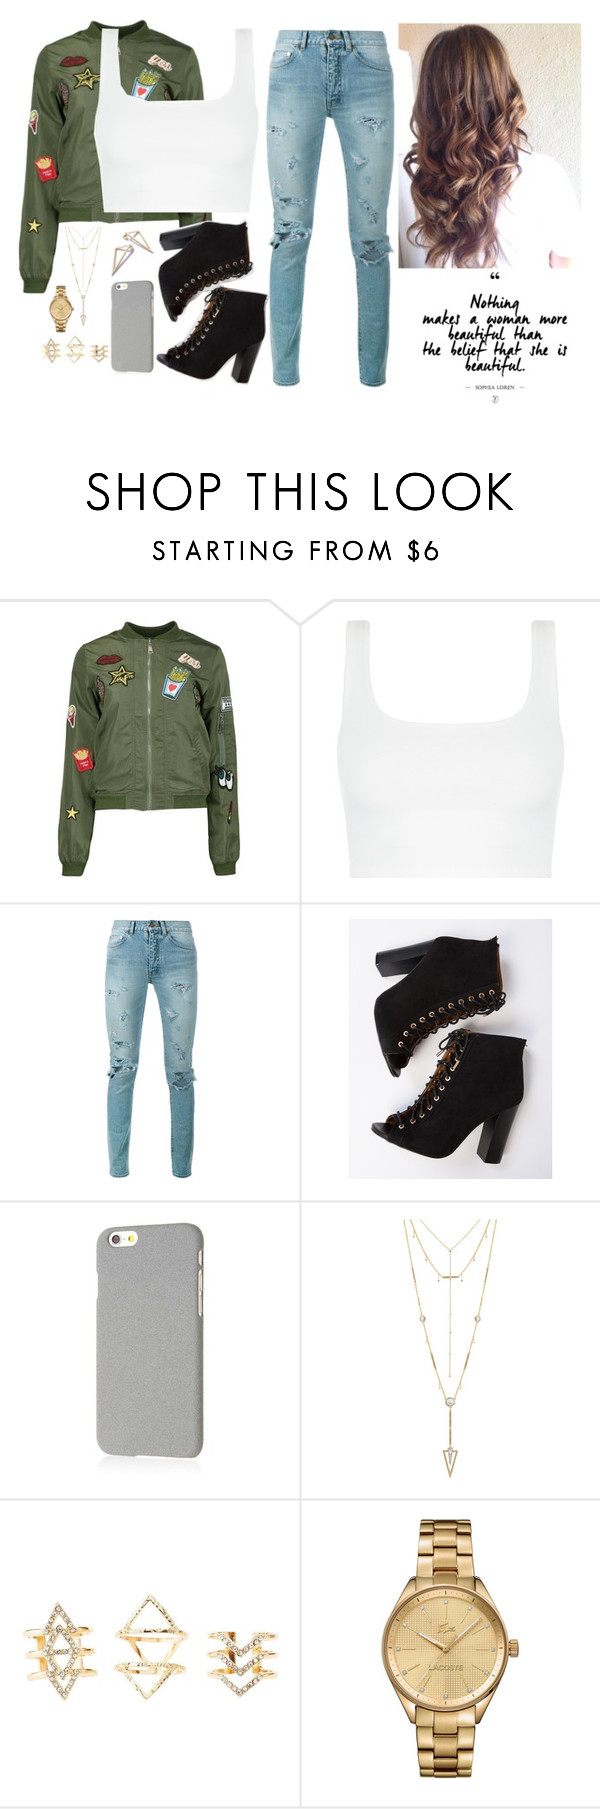 """""""beautiful"""" by wifeofbizzle ❤ liked on Polyvore featuring Boohoo, Yves Saint Laurent, Klix, House of Harlow 1960, Charlotte Russe and Lacoste"""